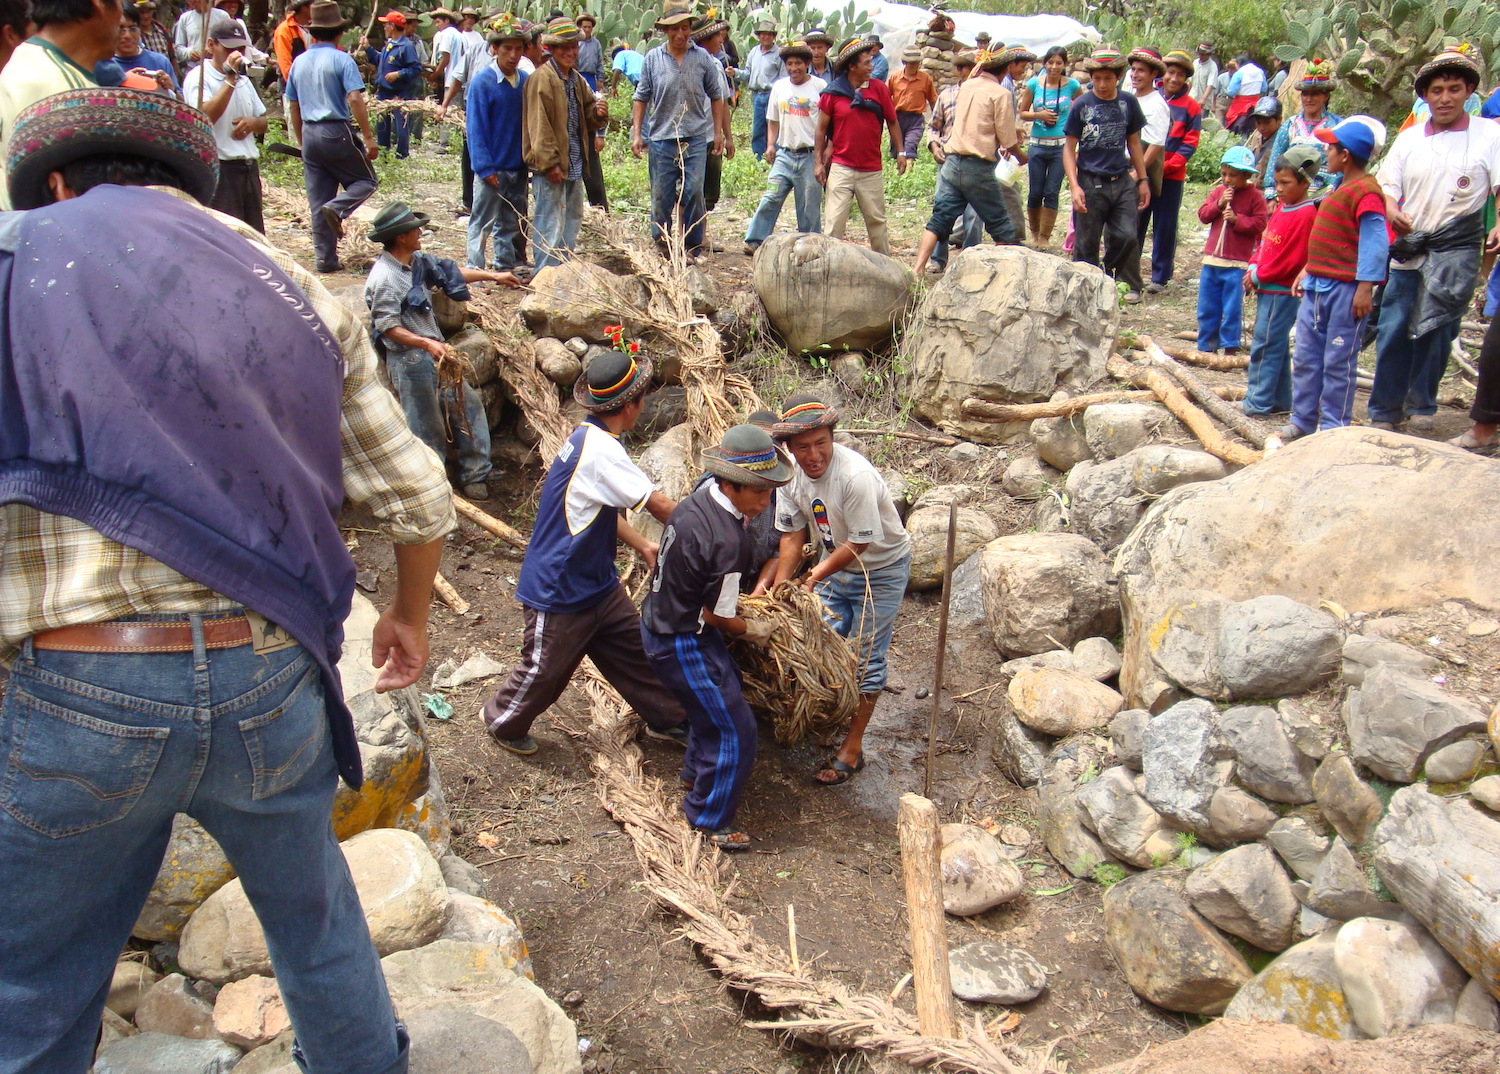 Community members look on as a group of people unfurl a long, large rope on the ground next to another rope. They are surrounded by large stones.